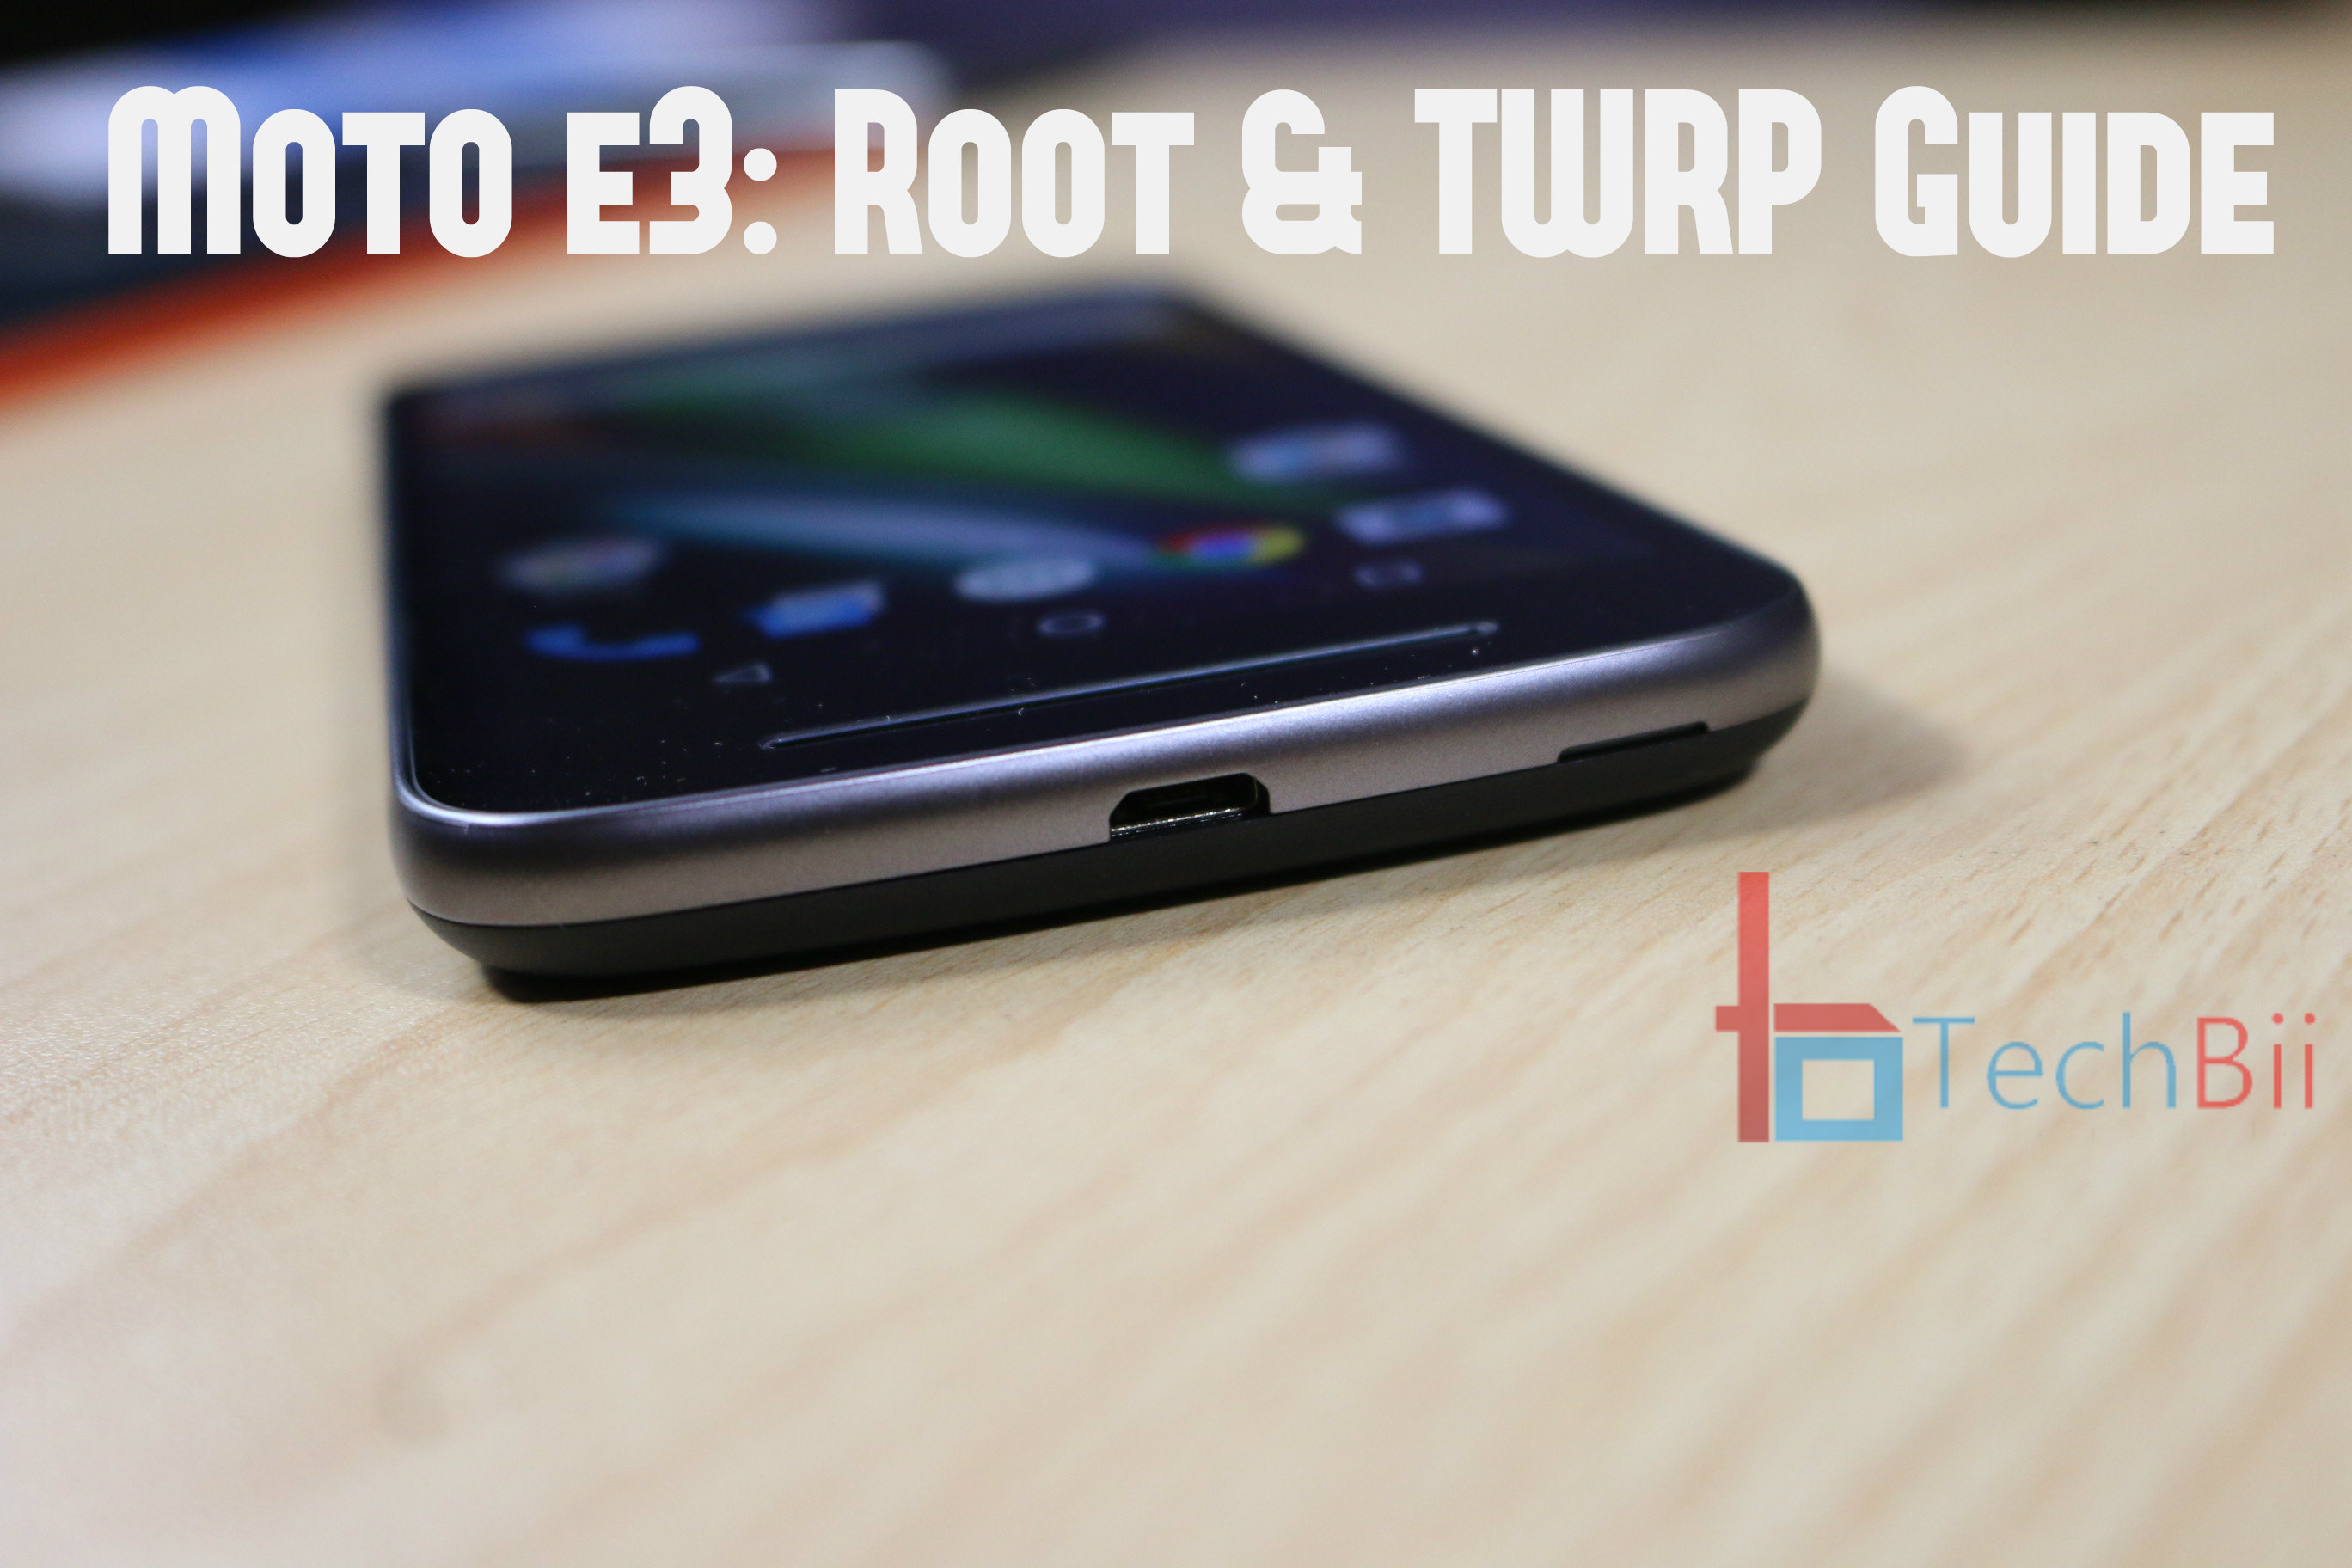 Moto E3 : Unlock Bootloader, Root & Install TWRP Recovery - TechBii